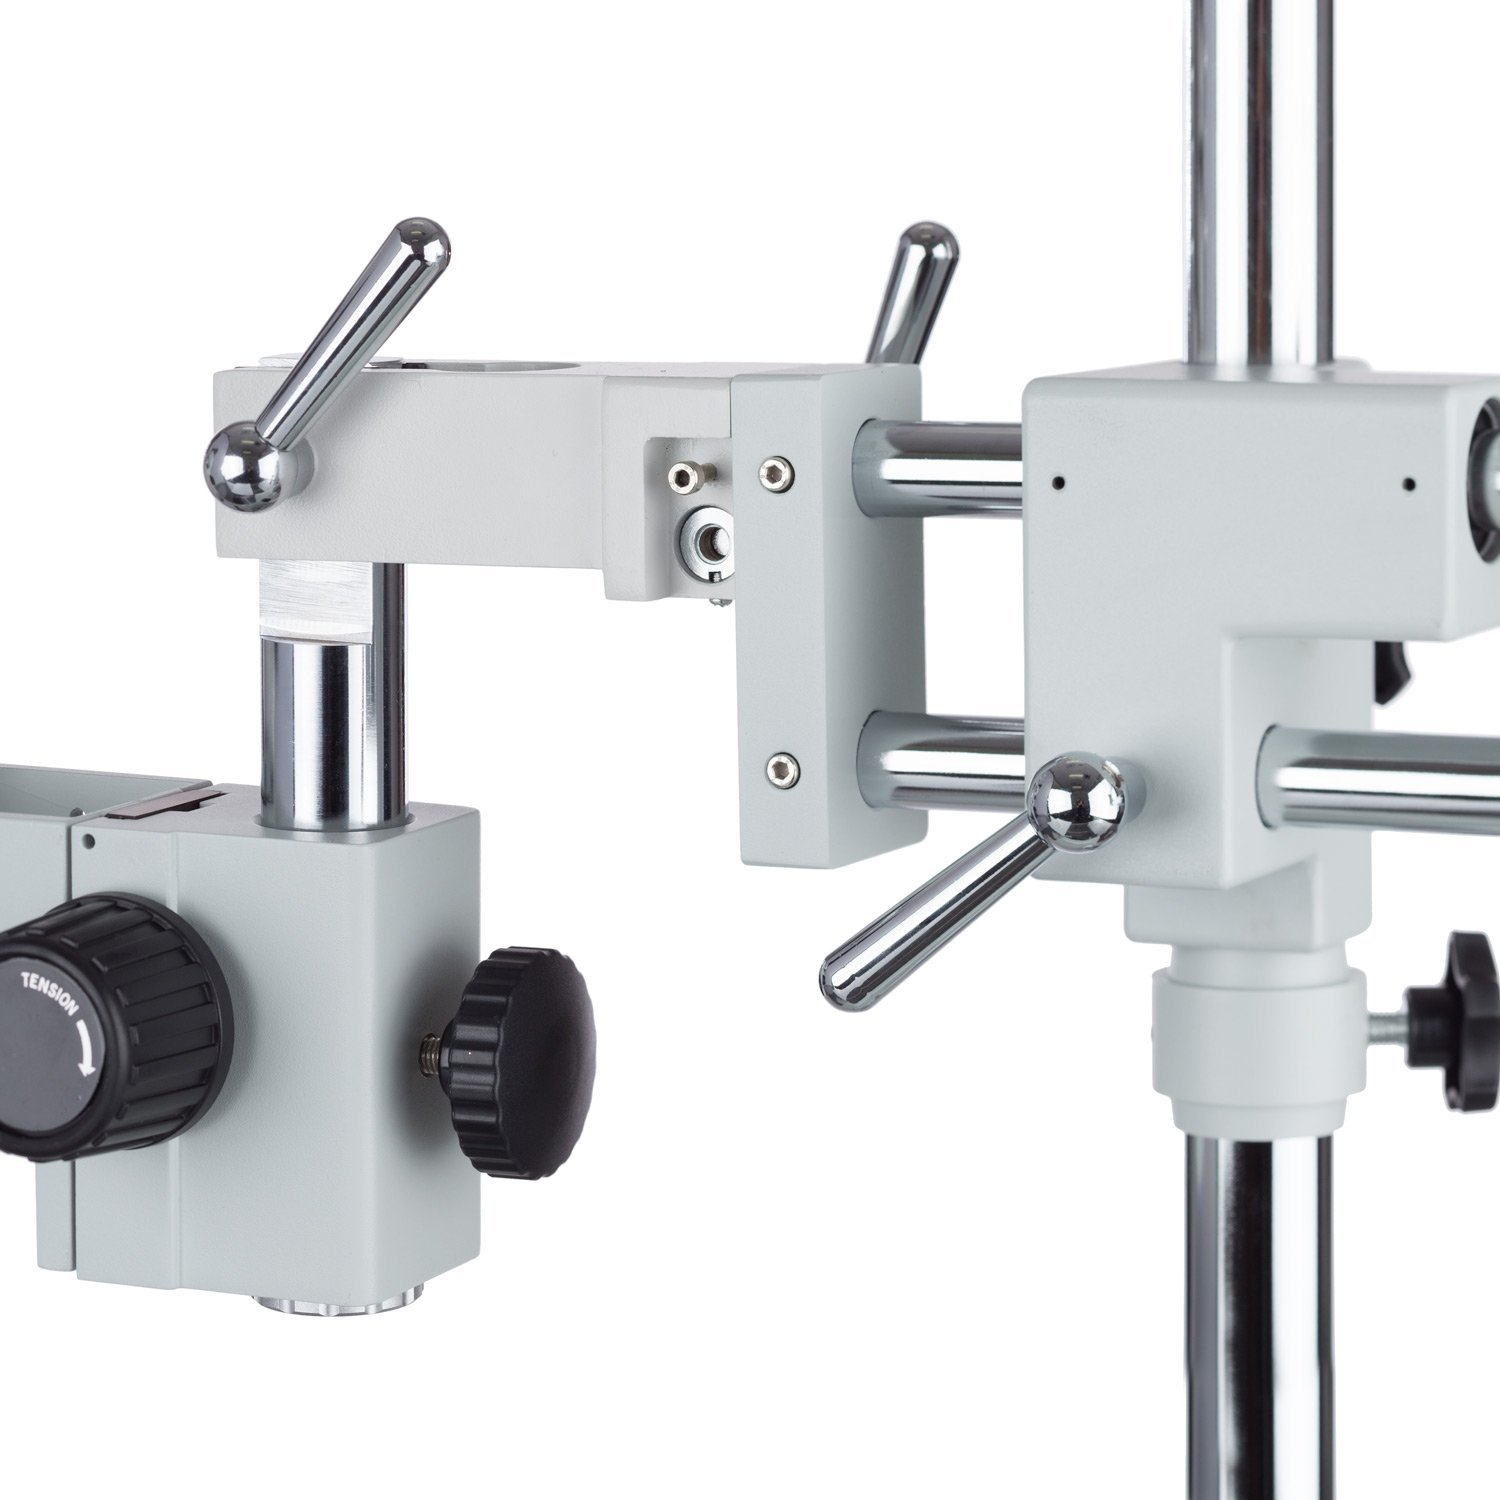 AmScope 7X-45X Simul-Focal Stereo Lockable Zoom Microscope on Dual Arm Boom Stand by AmScope (Image #3)